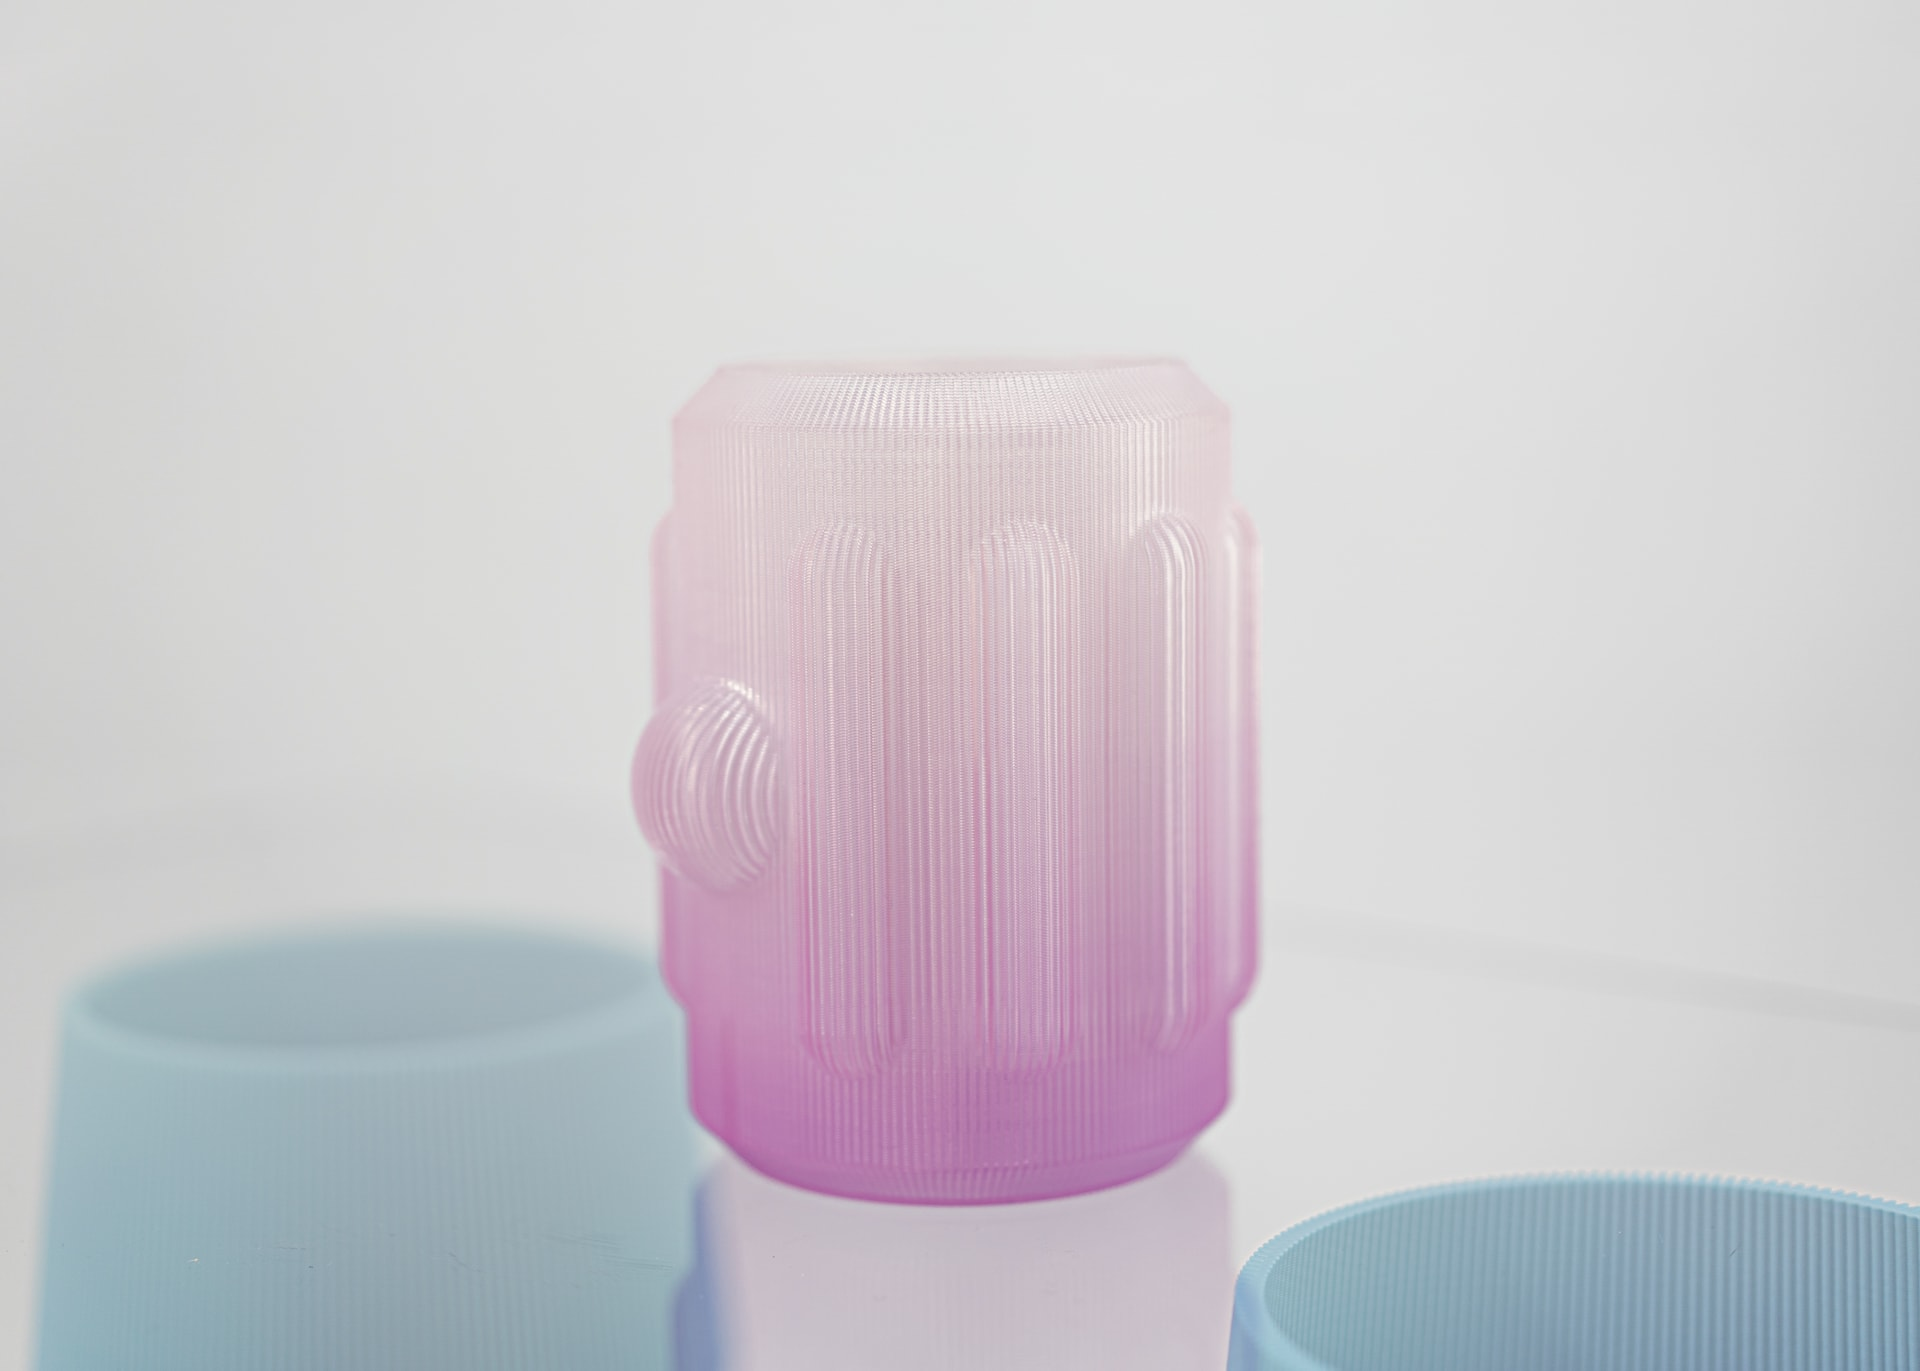 Dutch Design Week — Blurred Objects